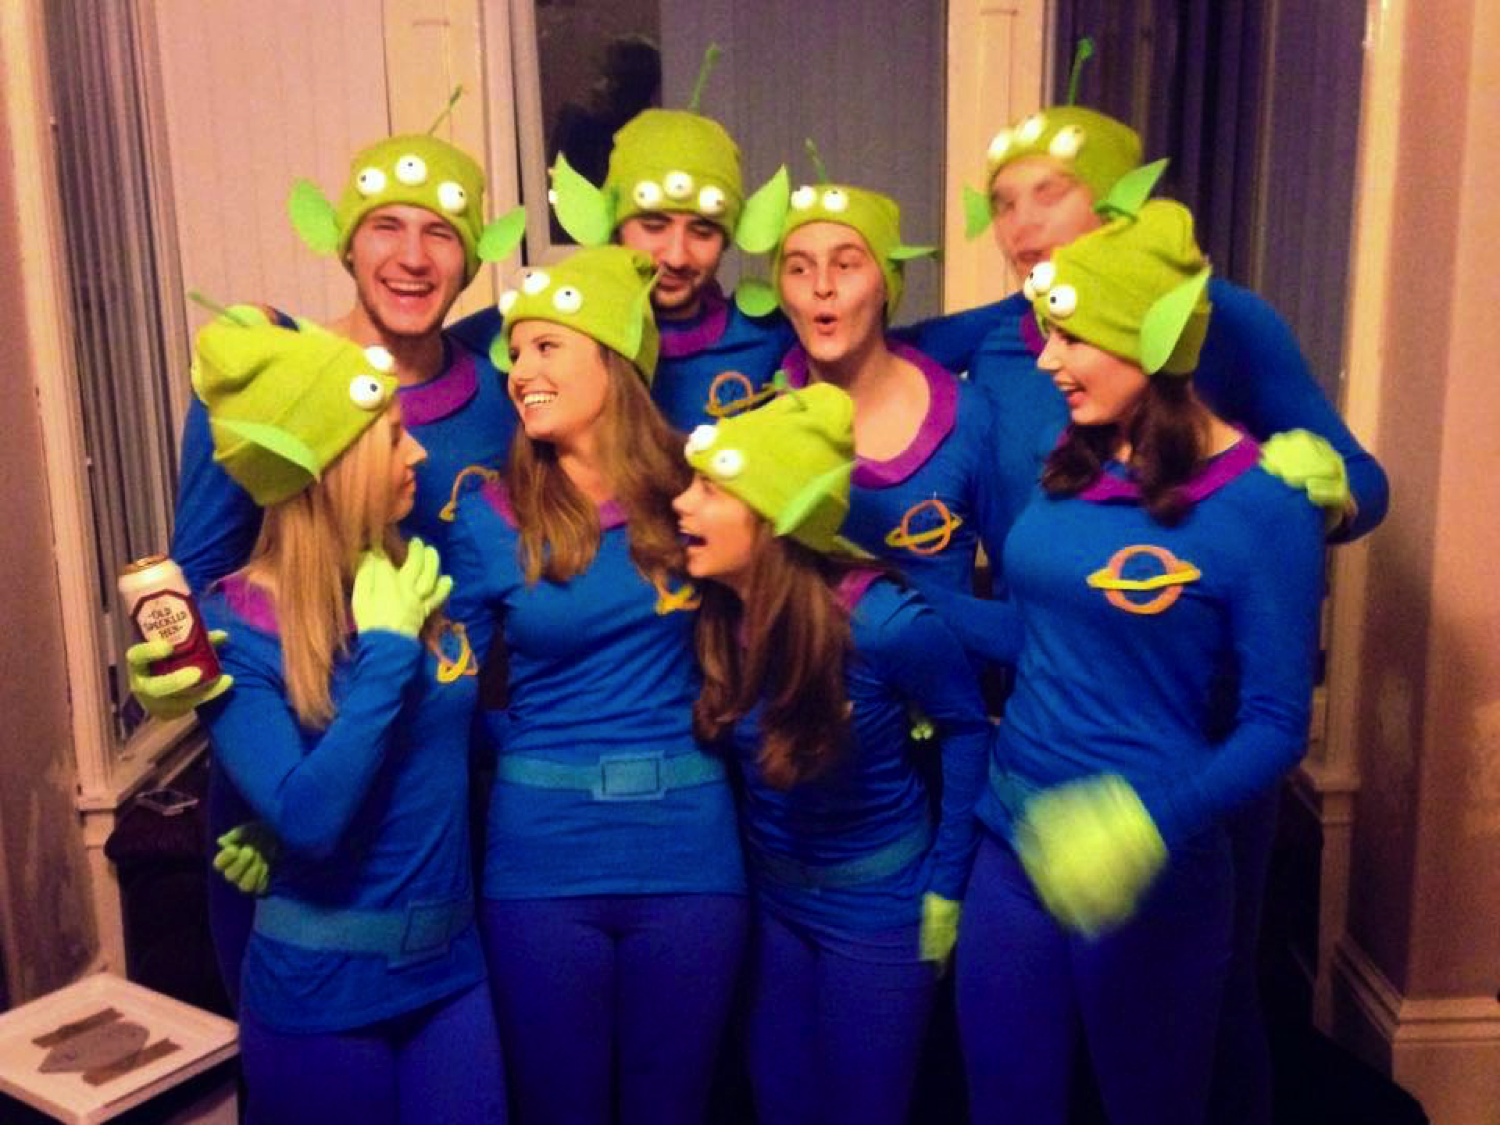 Space themed fancy dress ideas fabulous womens deluxe classic toga elegant disney pixar fancy dress group team costumes toy story little green aliens the claw diy homemade with space themed fancy dress ideas solutioingenieria Images